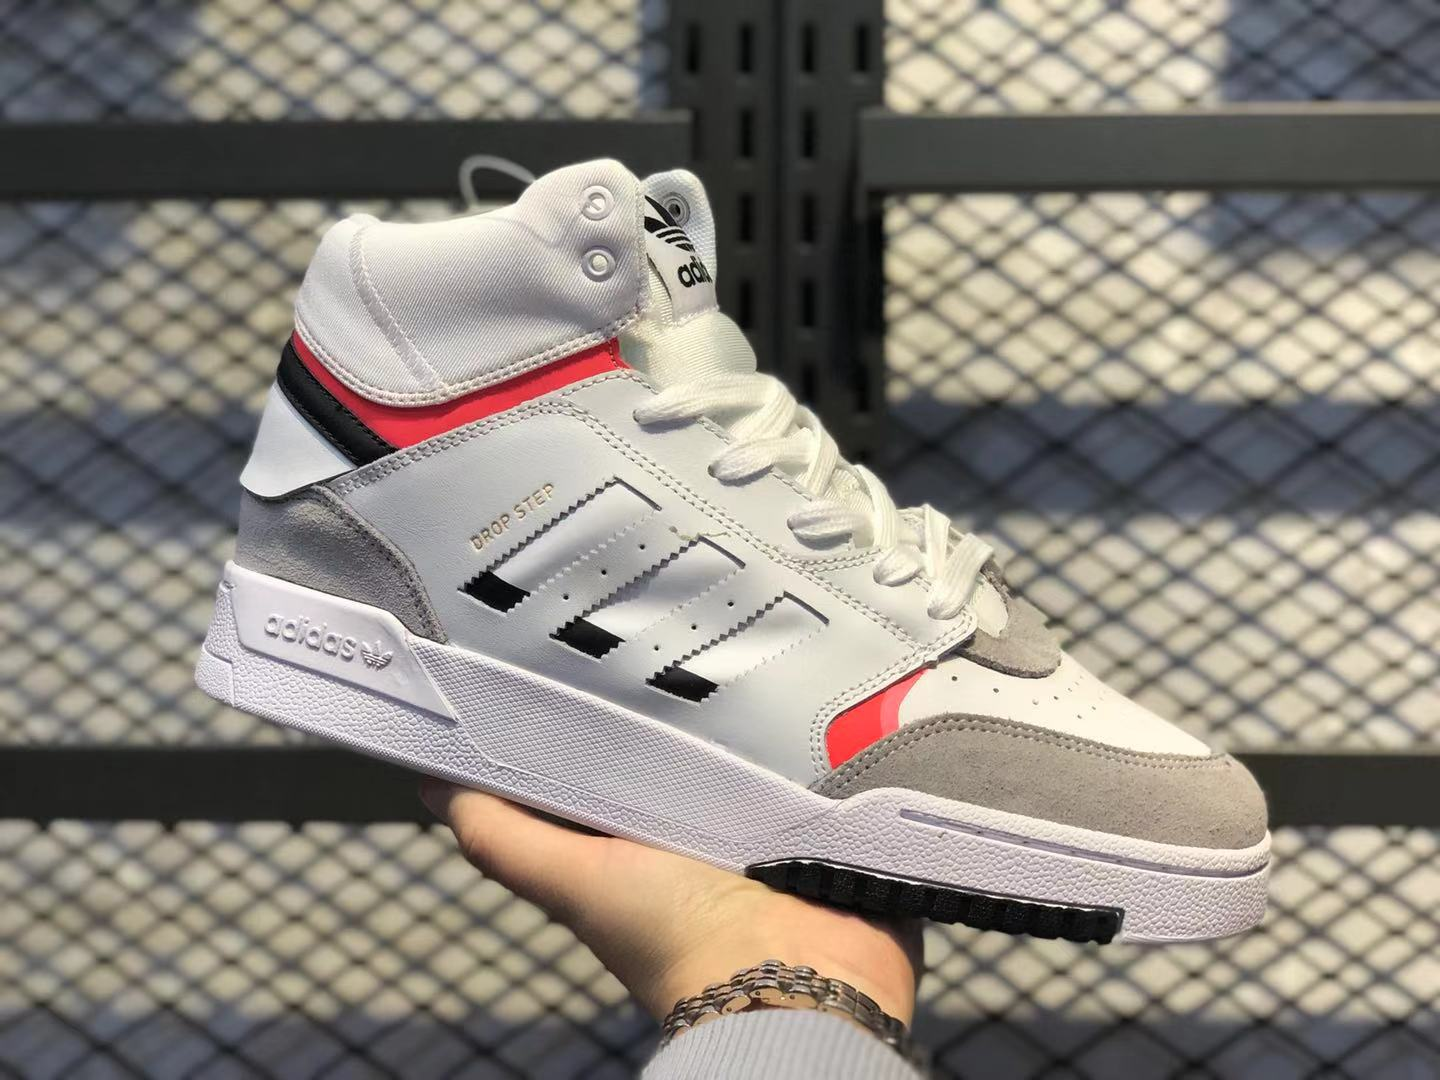 Adidas Originals Drop Step Cloud White/Wolf Grey-Gym Red Sneakers On Sale